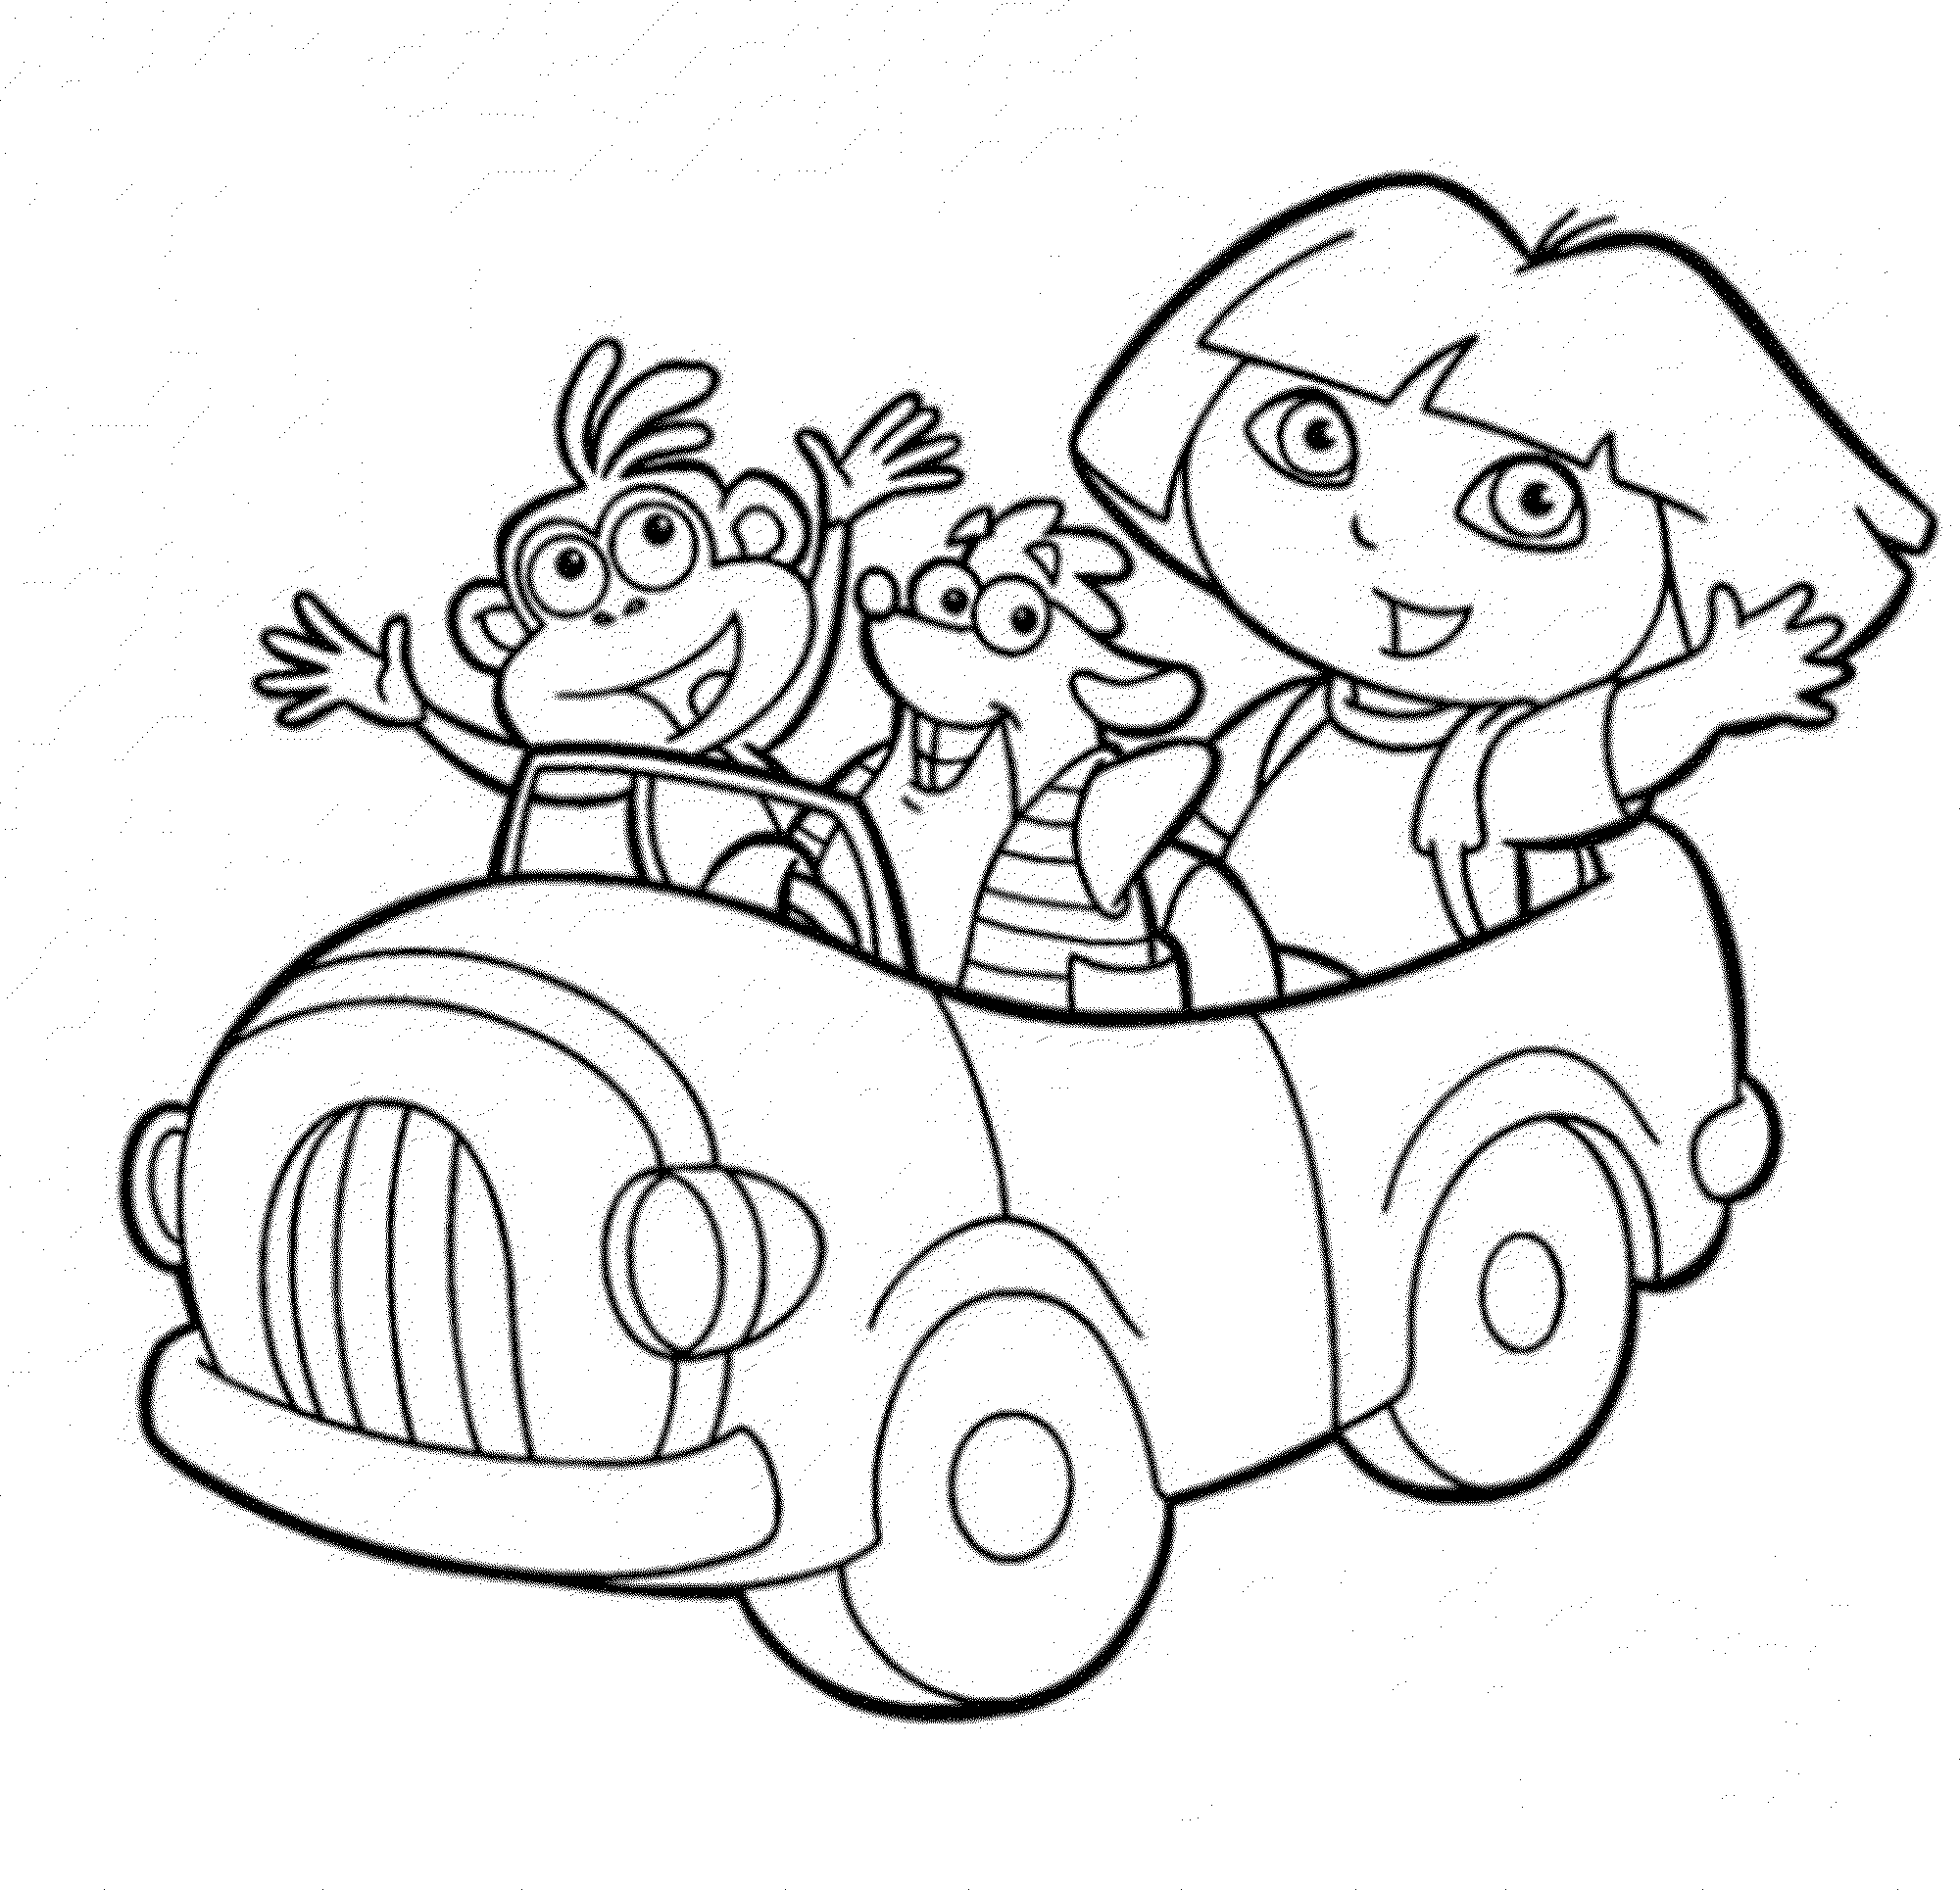 dora printables print download dora coloring pages to learn new things printables dora